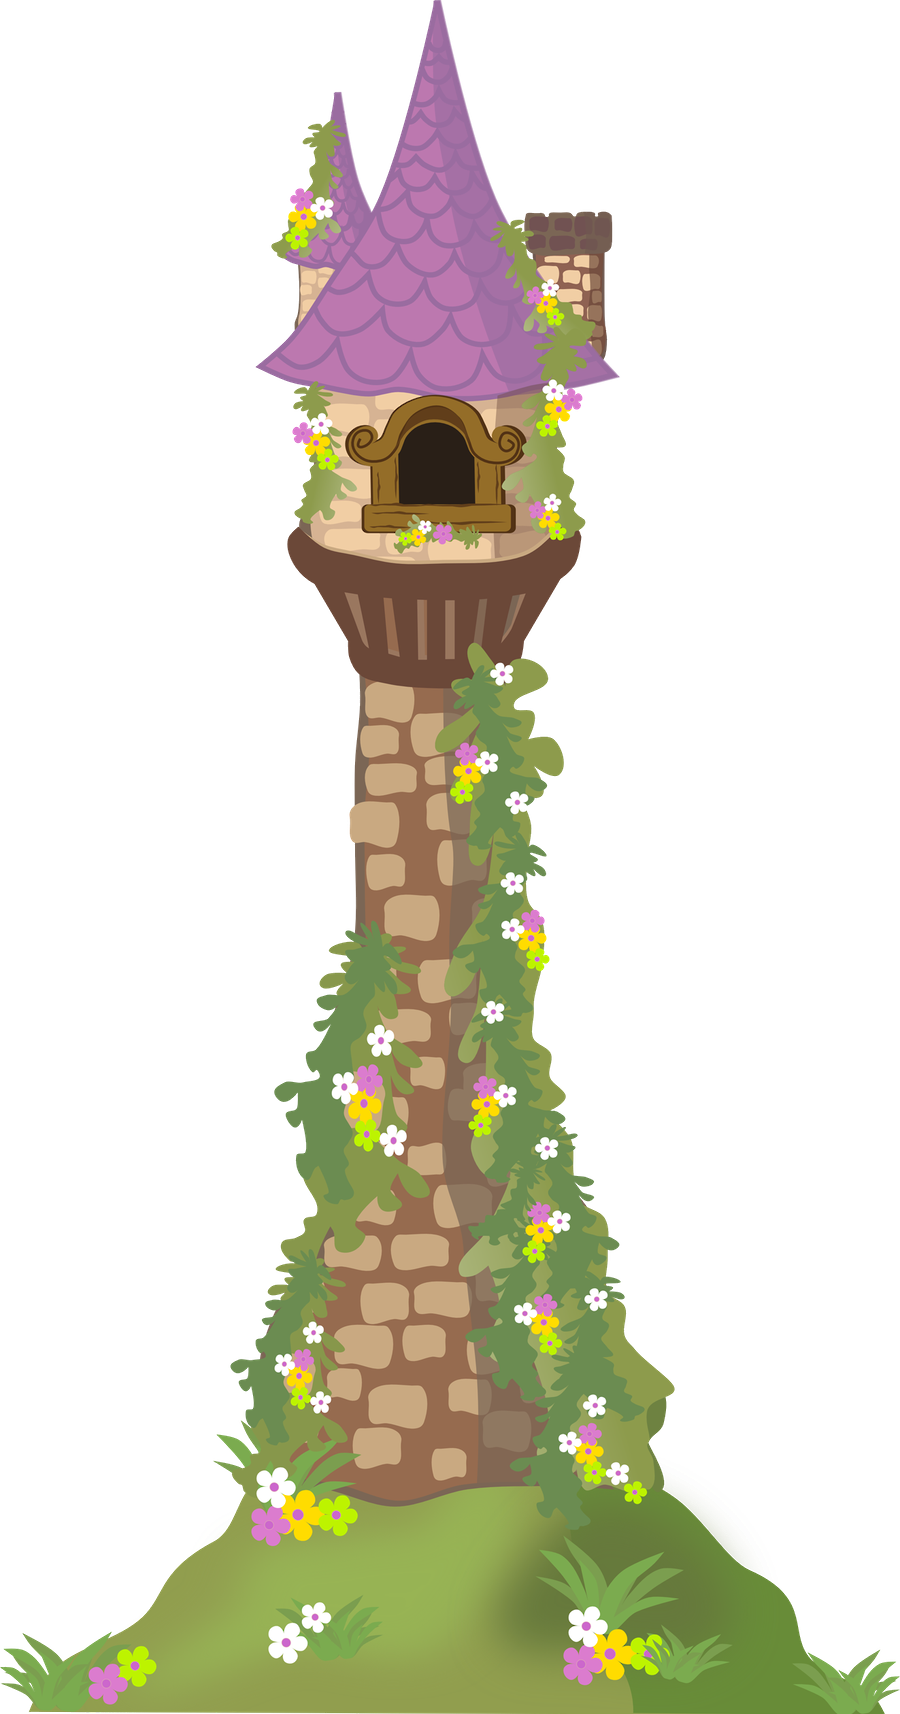 Rapunzel Clipart Rapunzel Tower Rapunzel Rapunzel Tower Transparent Free For Download On Webstockreview 2020